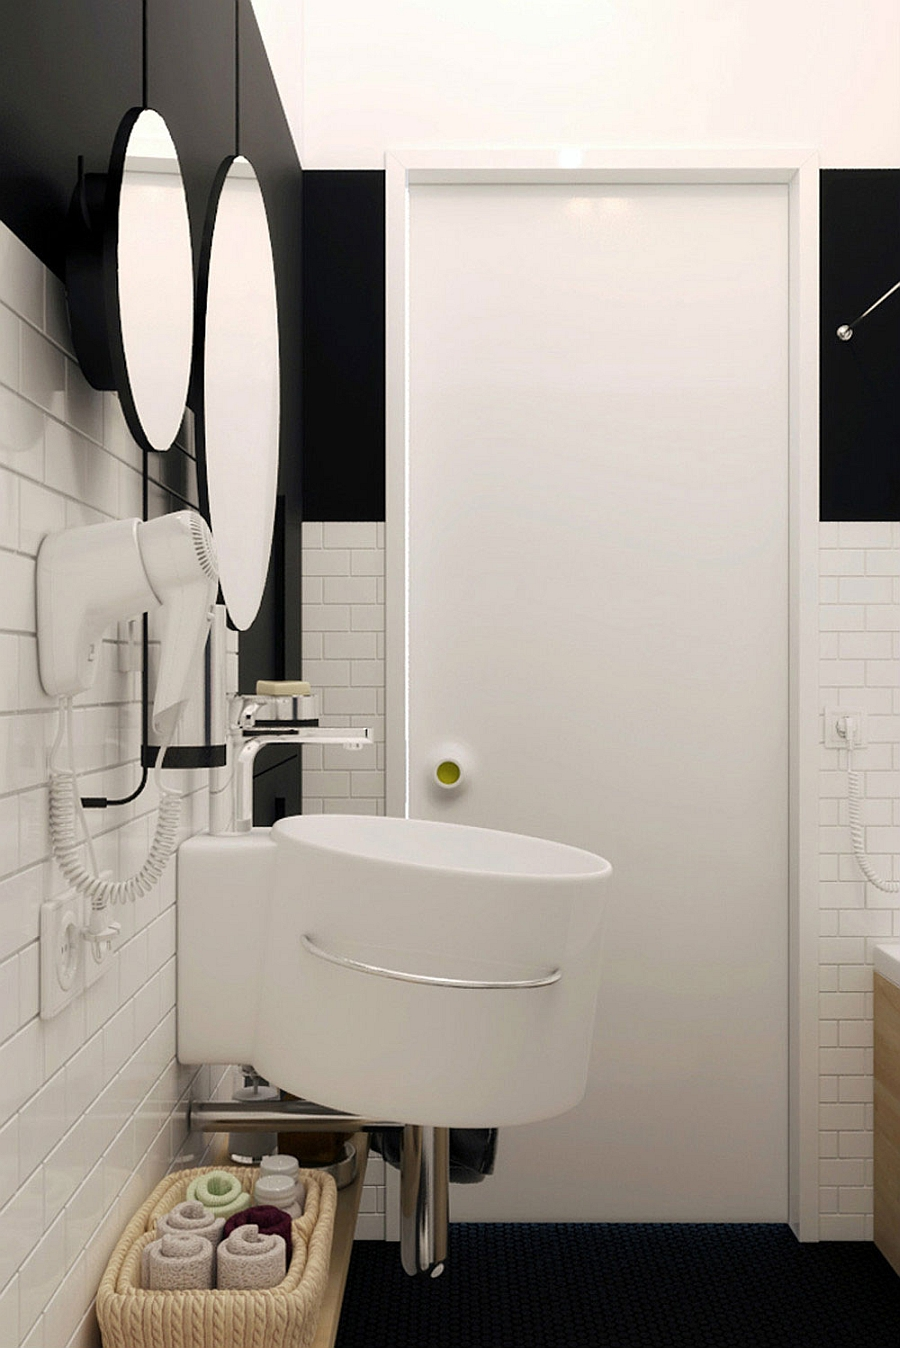 Compact Small Apartment In Black And White Decoration : Powerful Wall Mouted Sink For A Small Bathroom In Minimalist Black And White Interior